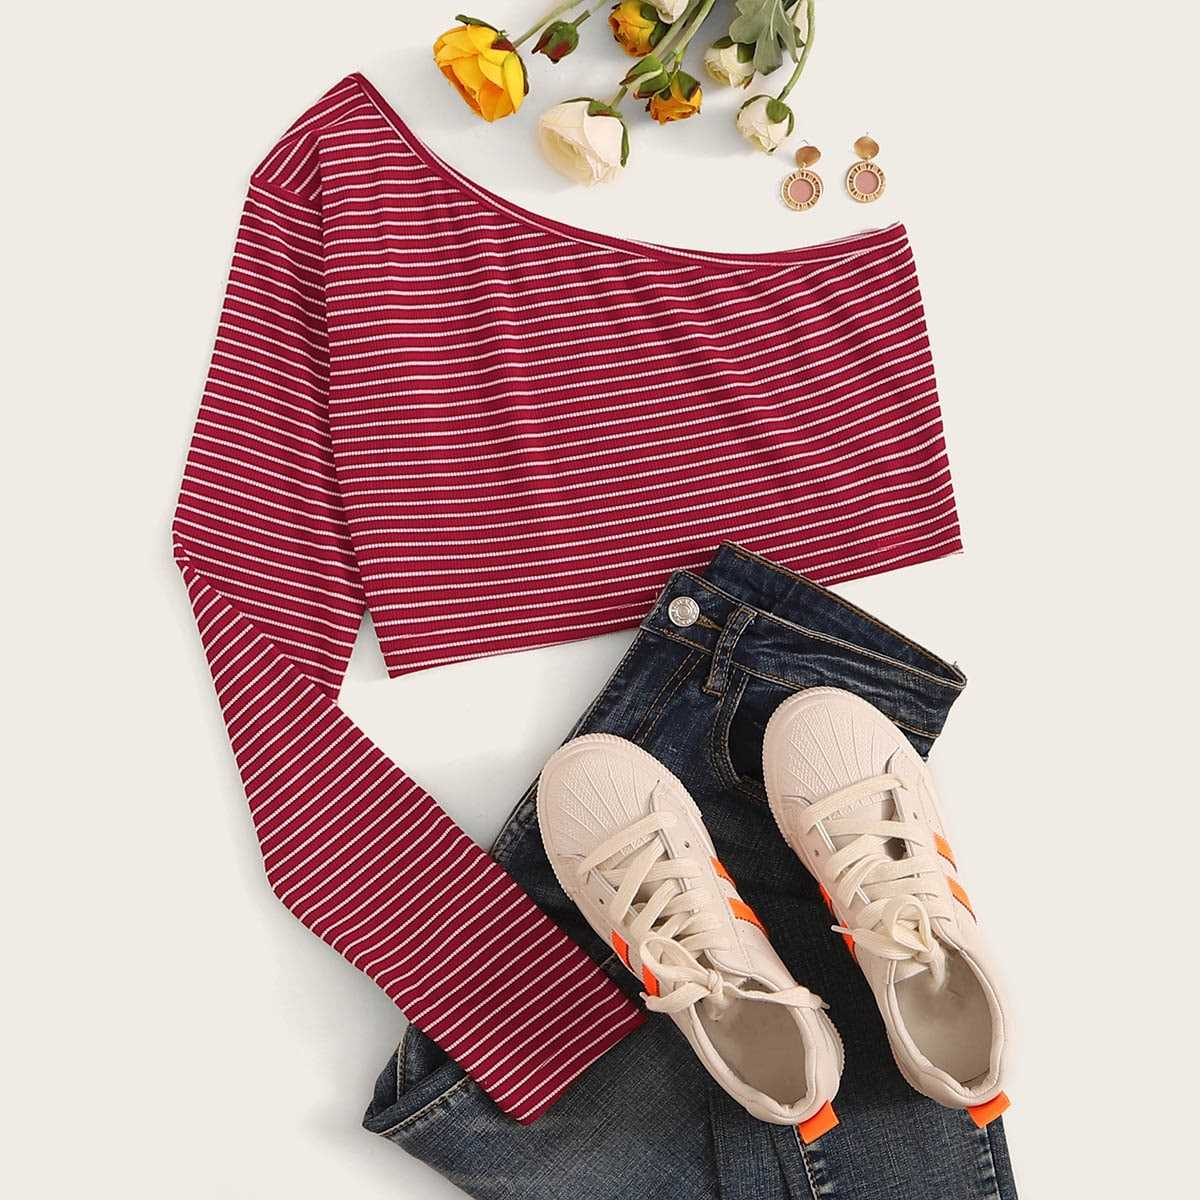 One Shoulder Striped Ribbed Top in Red by ROMWE on GOOFASH